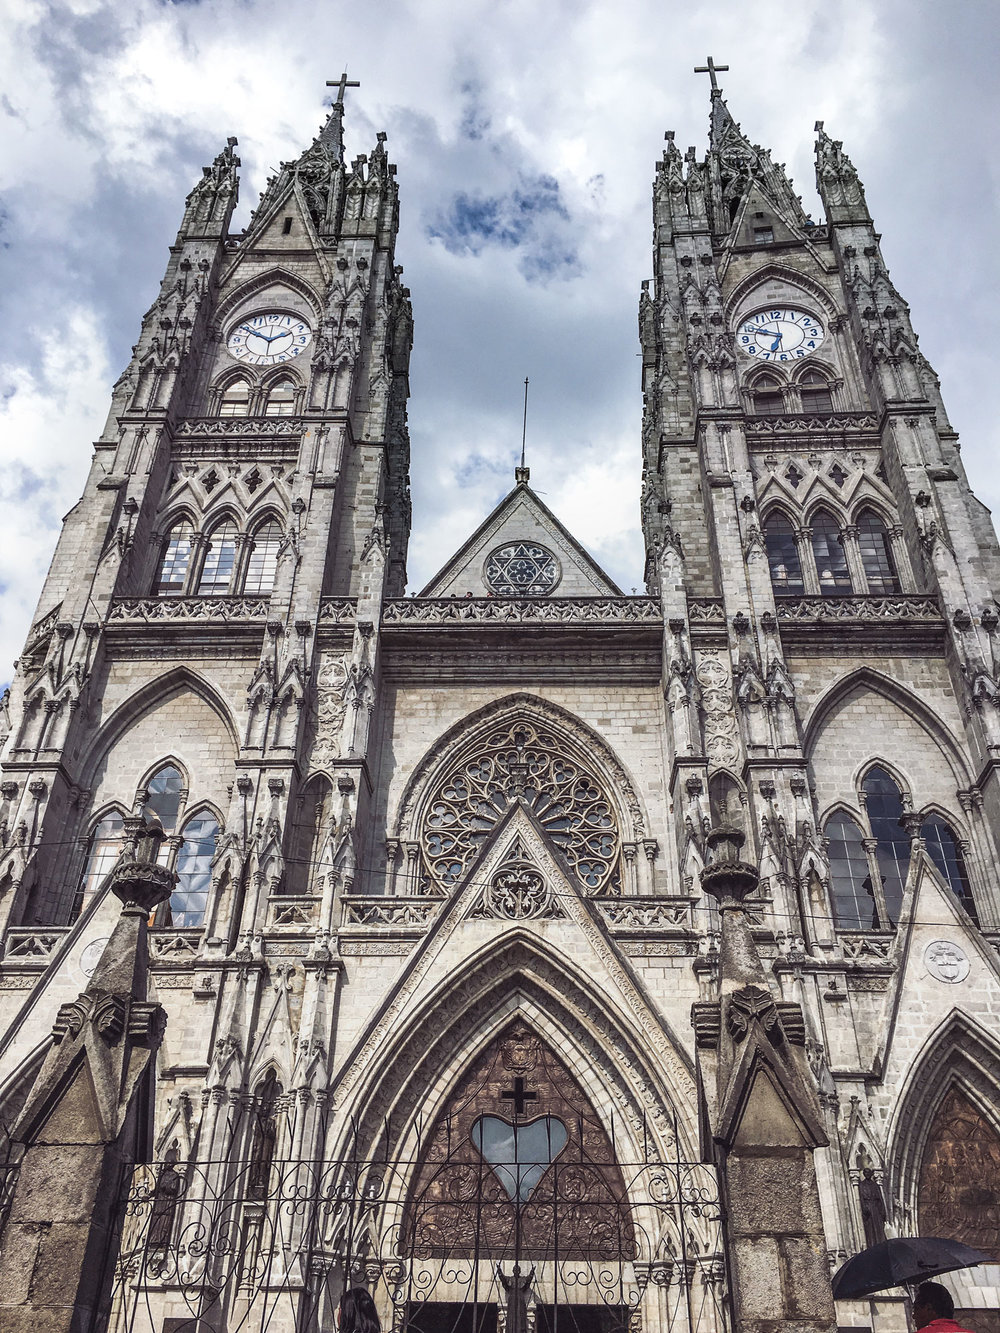 quito-ecuador-wander-south-cathedral-fascade.jpg